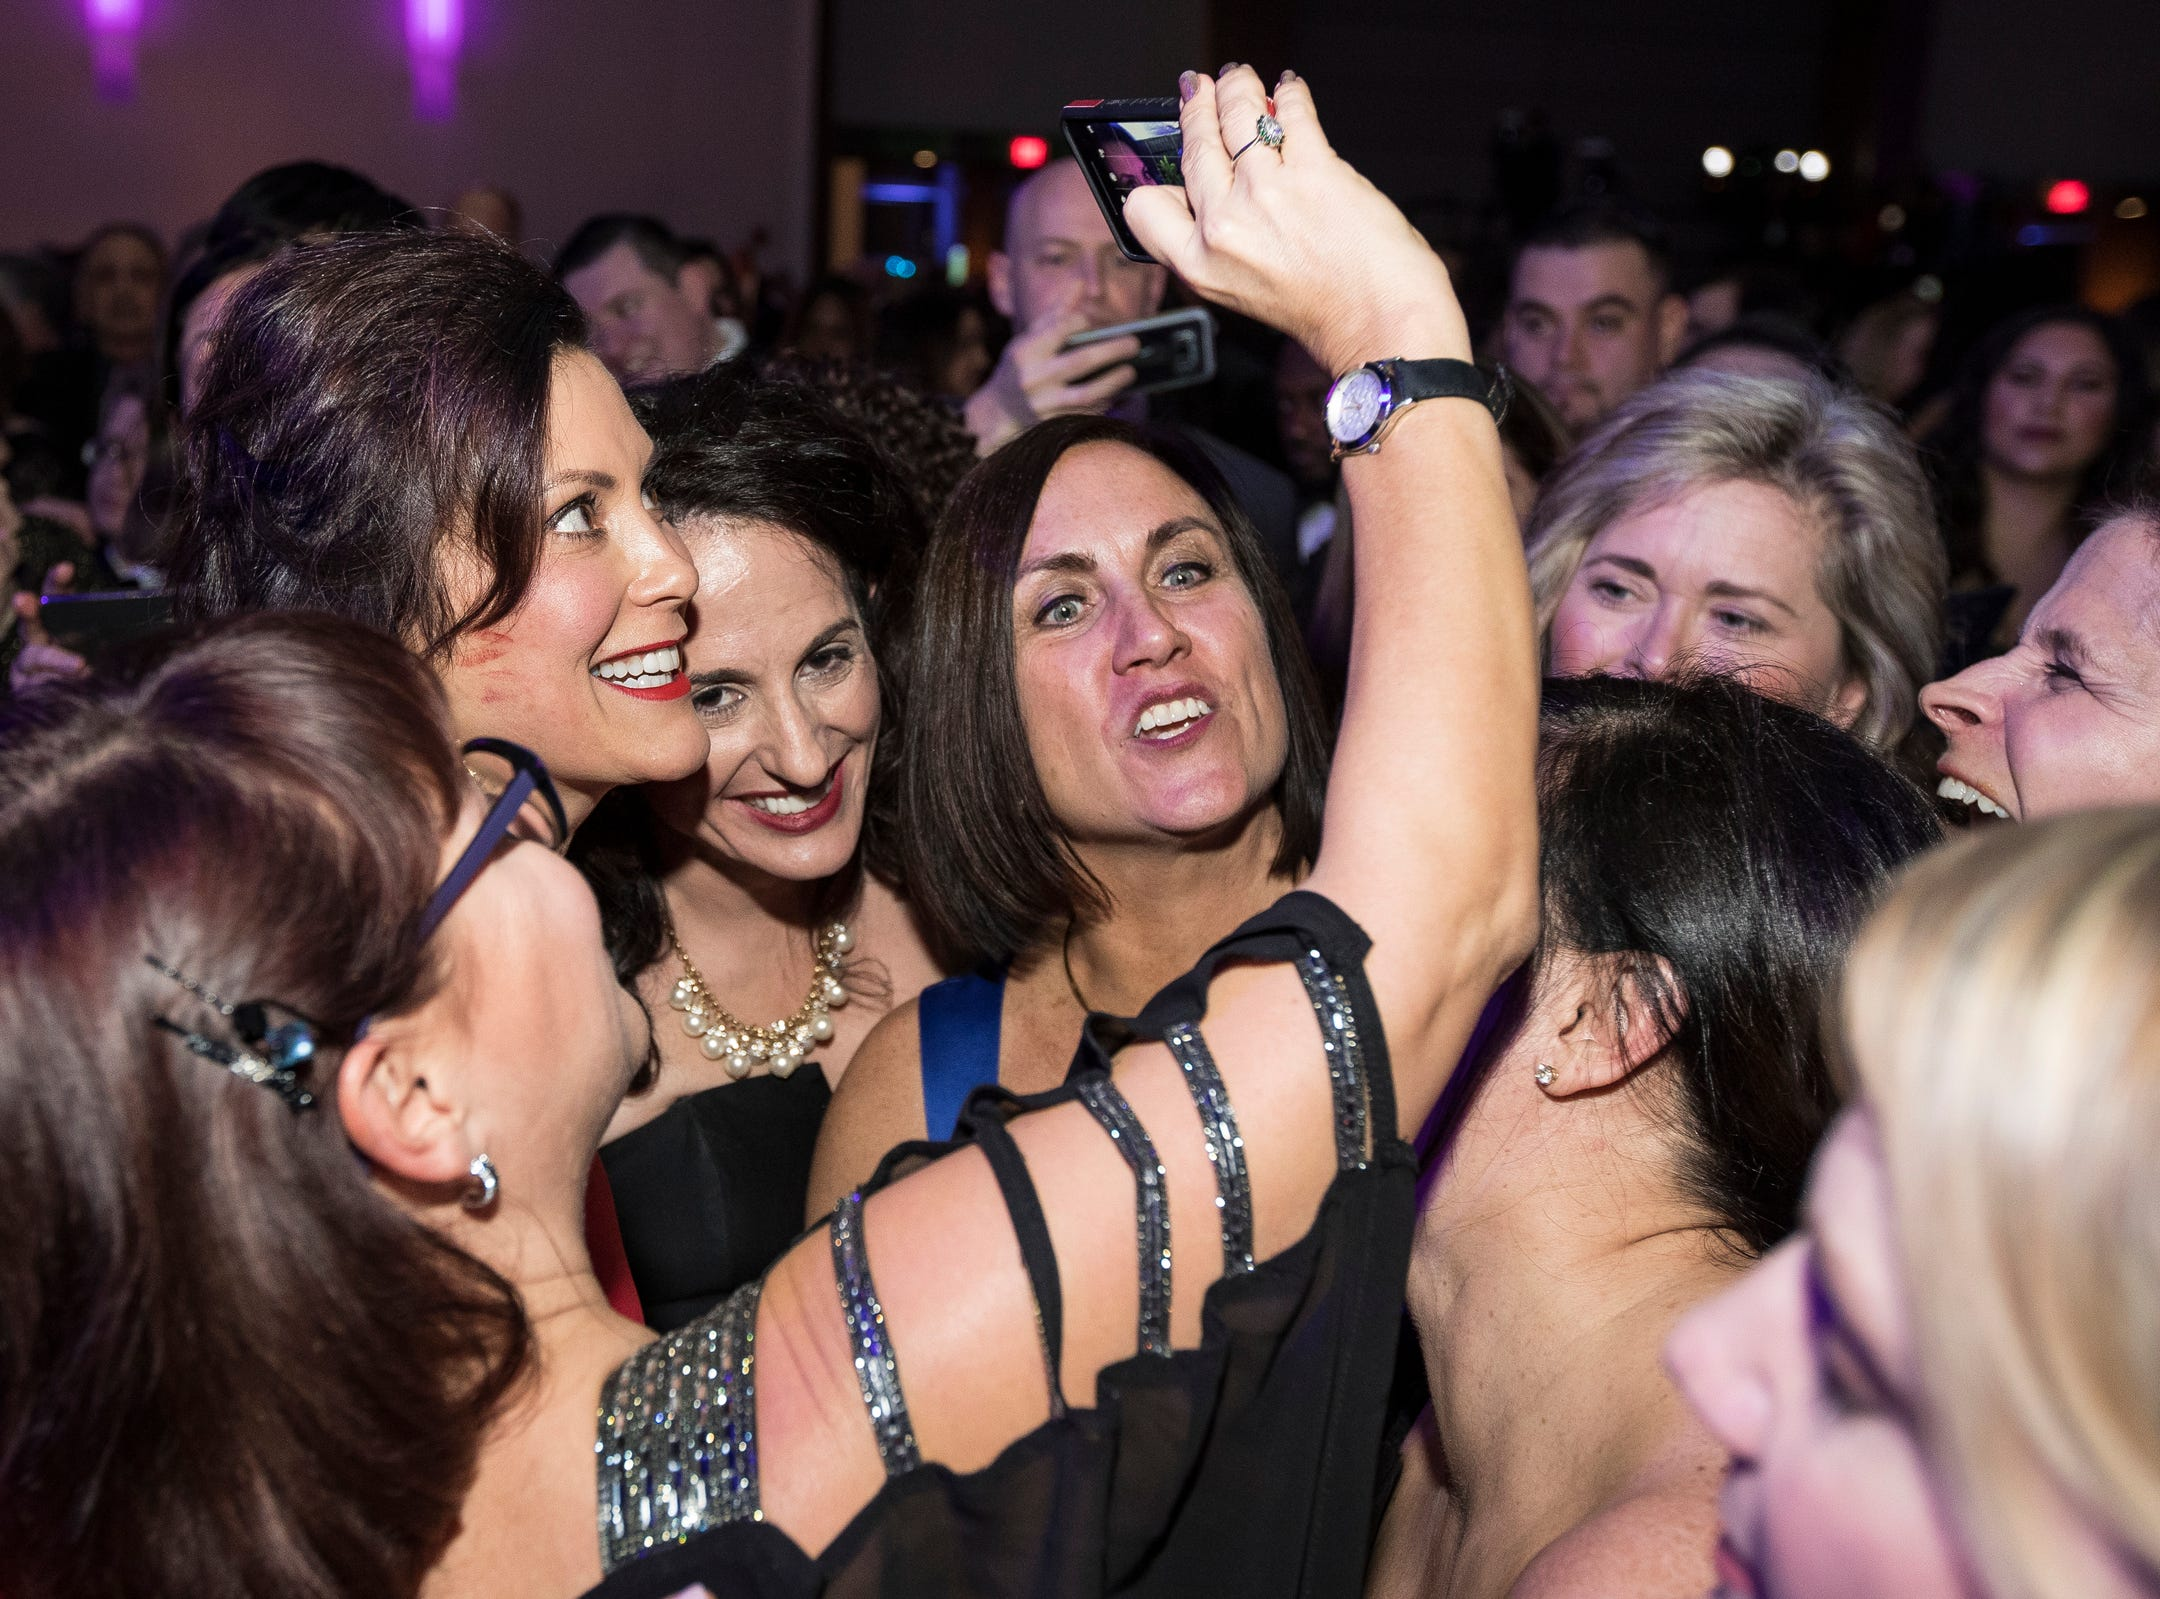 Governor Gretchen Whitmer takes a selfie with her sorority sisters from Michigan State University's Kappa Alpha Theta during the inaugural ball at Cobo Center in Detroit on Tuesday, Jan. 1, 2019.